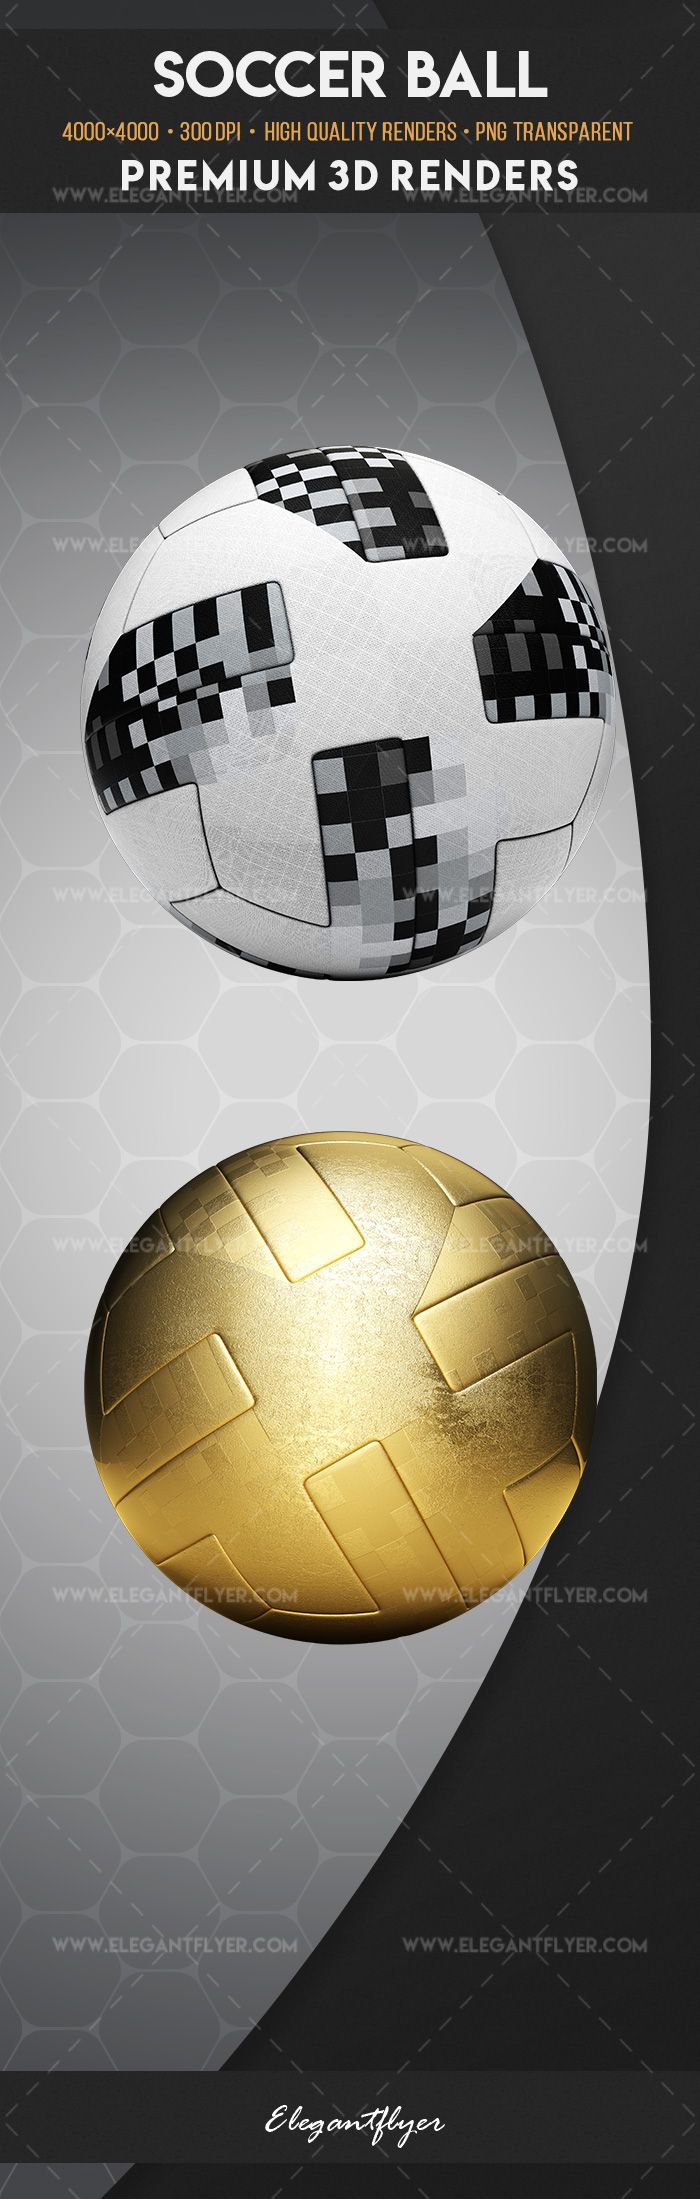 Soccer Ball – Premium 3d Render Templates